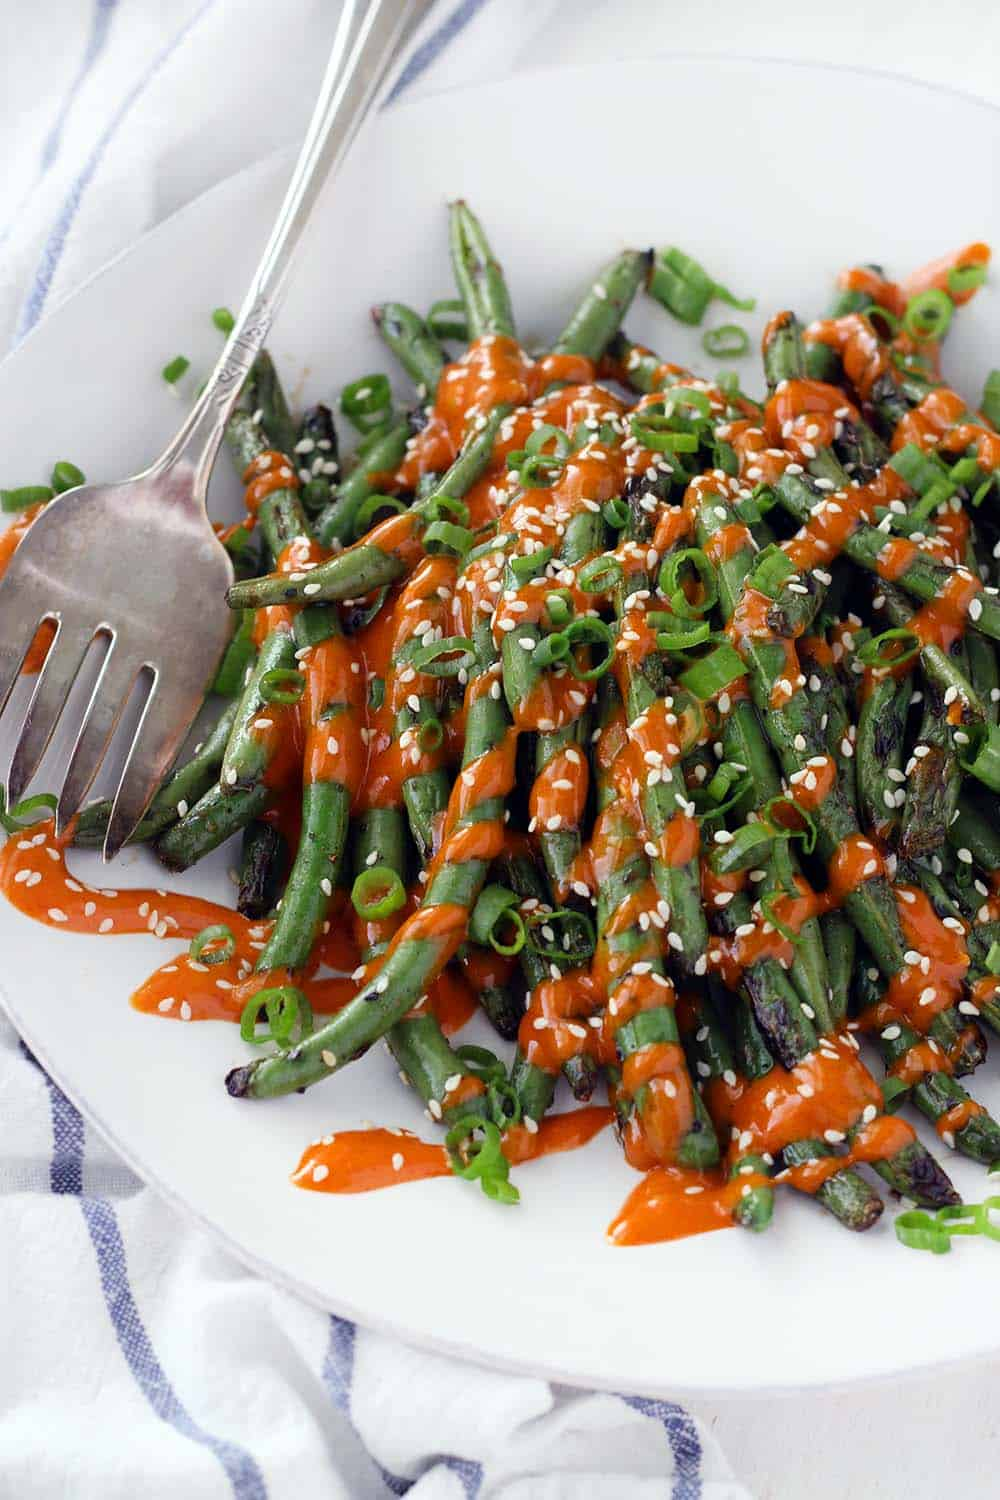 These grilled green beans are covered in spicy gochujang mayo with soy sauce and toasted sesame oil. This is the perfect low carb side dish, and they leftover mayo is amazing on sandwiches or on eggs! No grill? The beans can be sautéed or roasted as an alternative, and sriracha can be used as a substitute for gochujang.